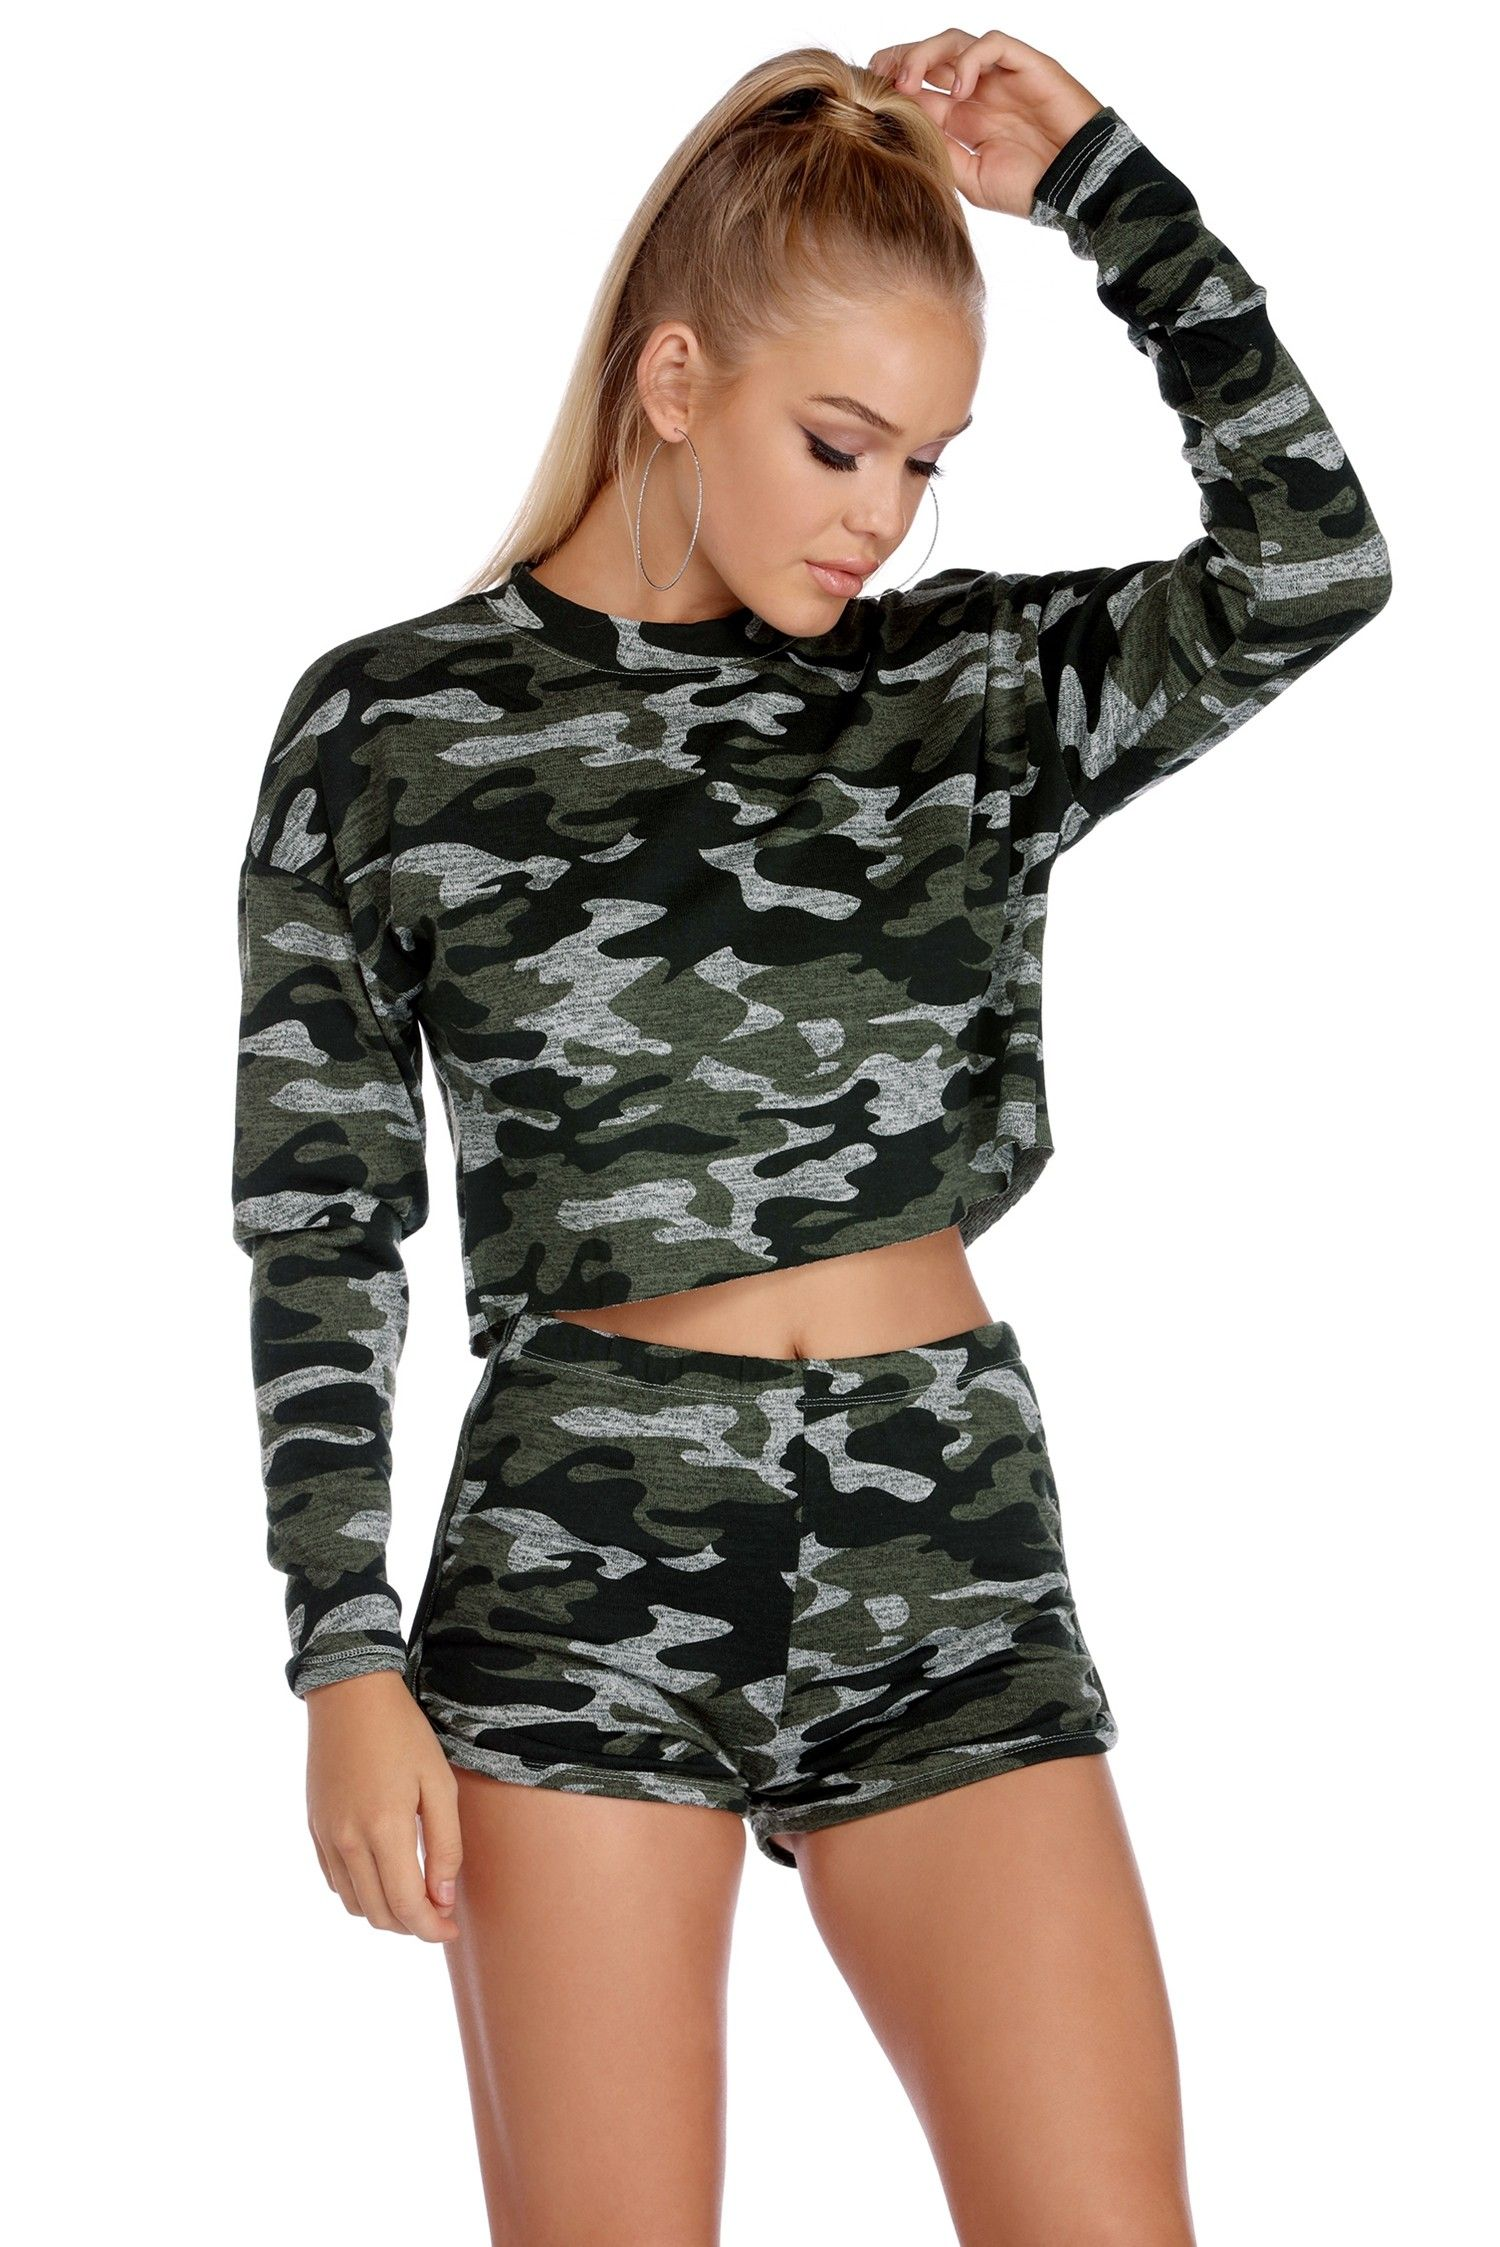 1c3f9b7037e9 CLEARANCE- Cozy In Camo Crop Top in 2019 |